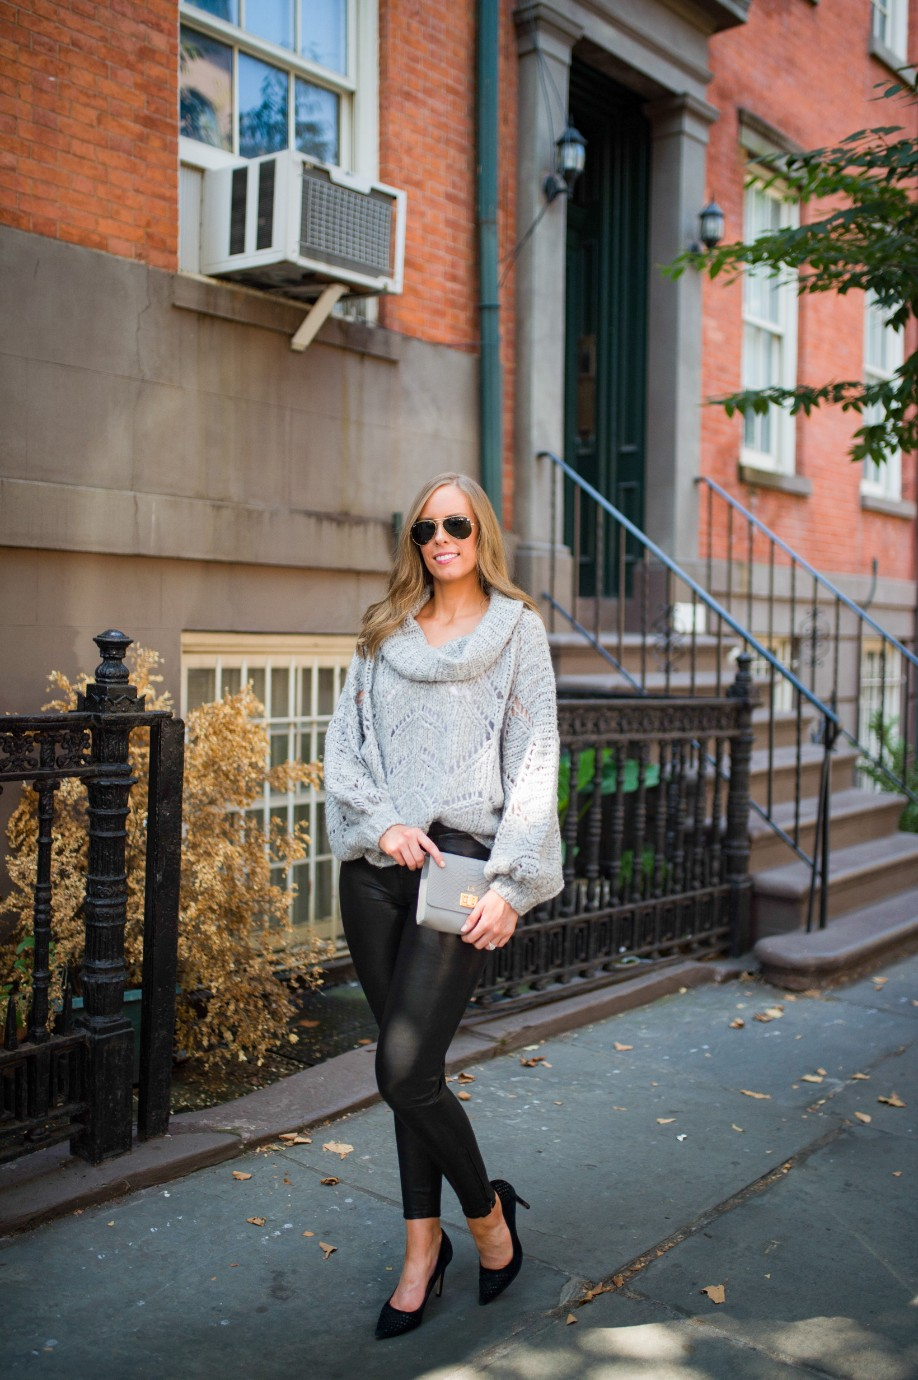 leather pants outfit and grey knit sweater fashion blogger outfit ideas fall winter style lauren slade style elixir 1